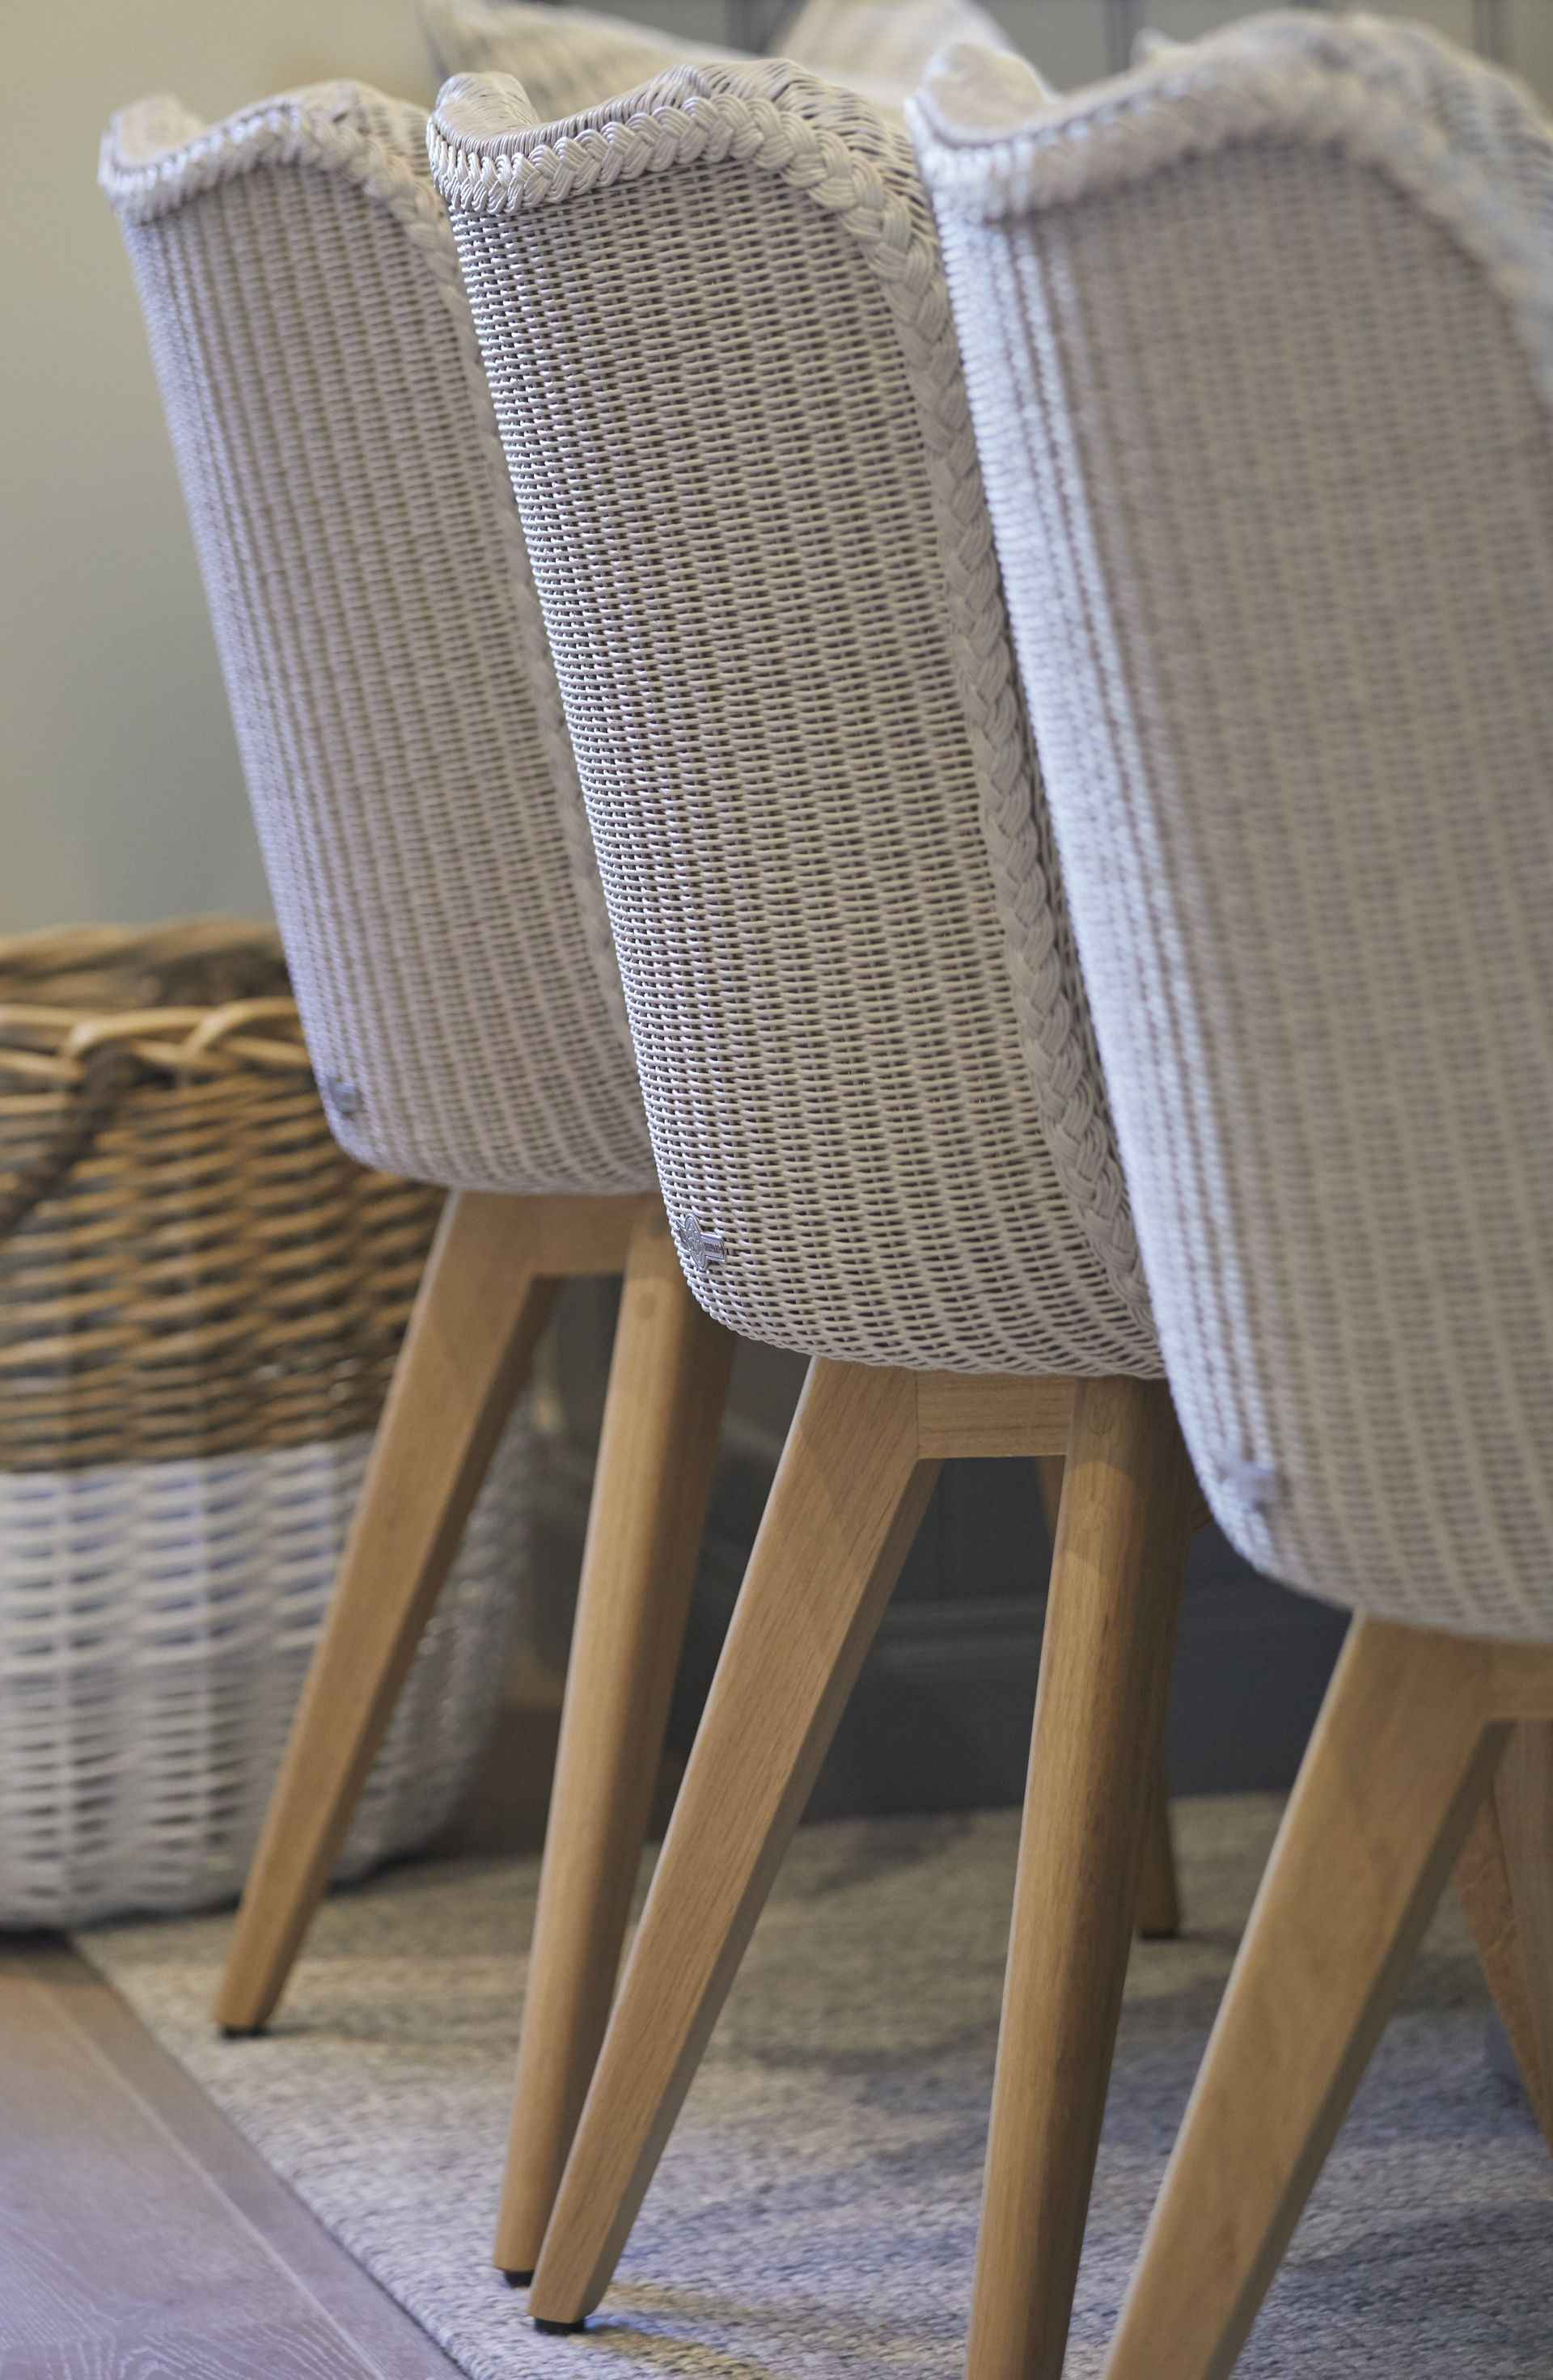 Close up of wicker chairs in Mountain Ash House